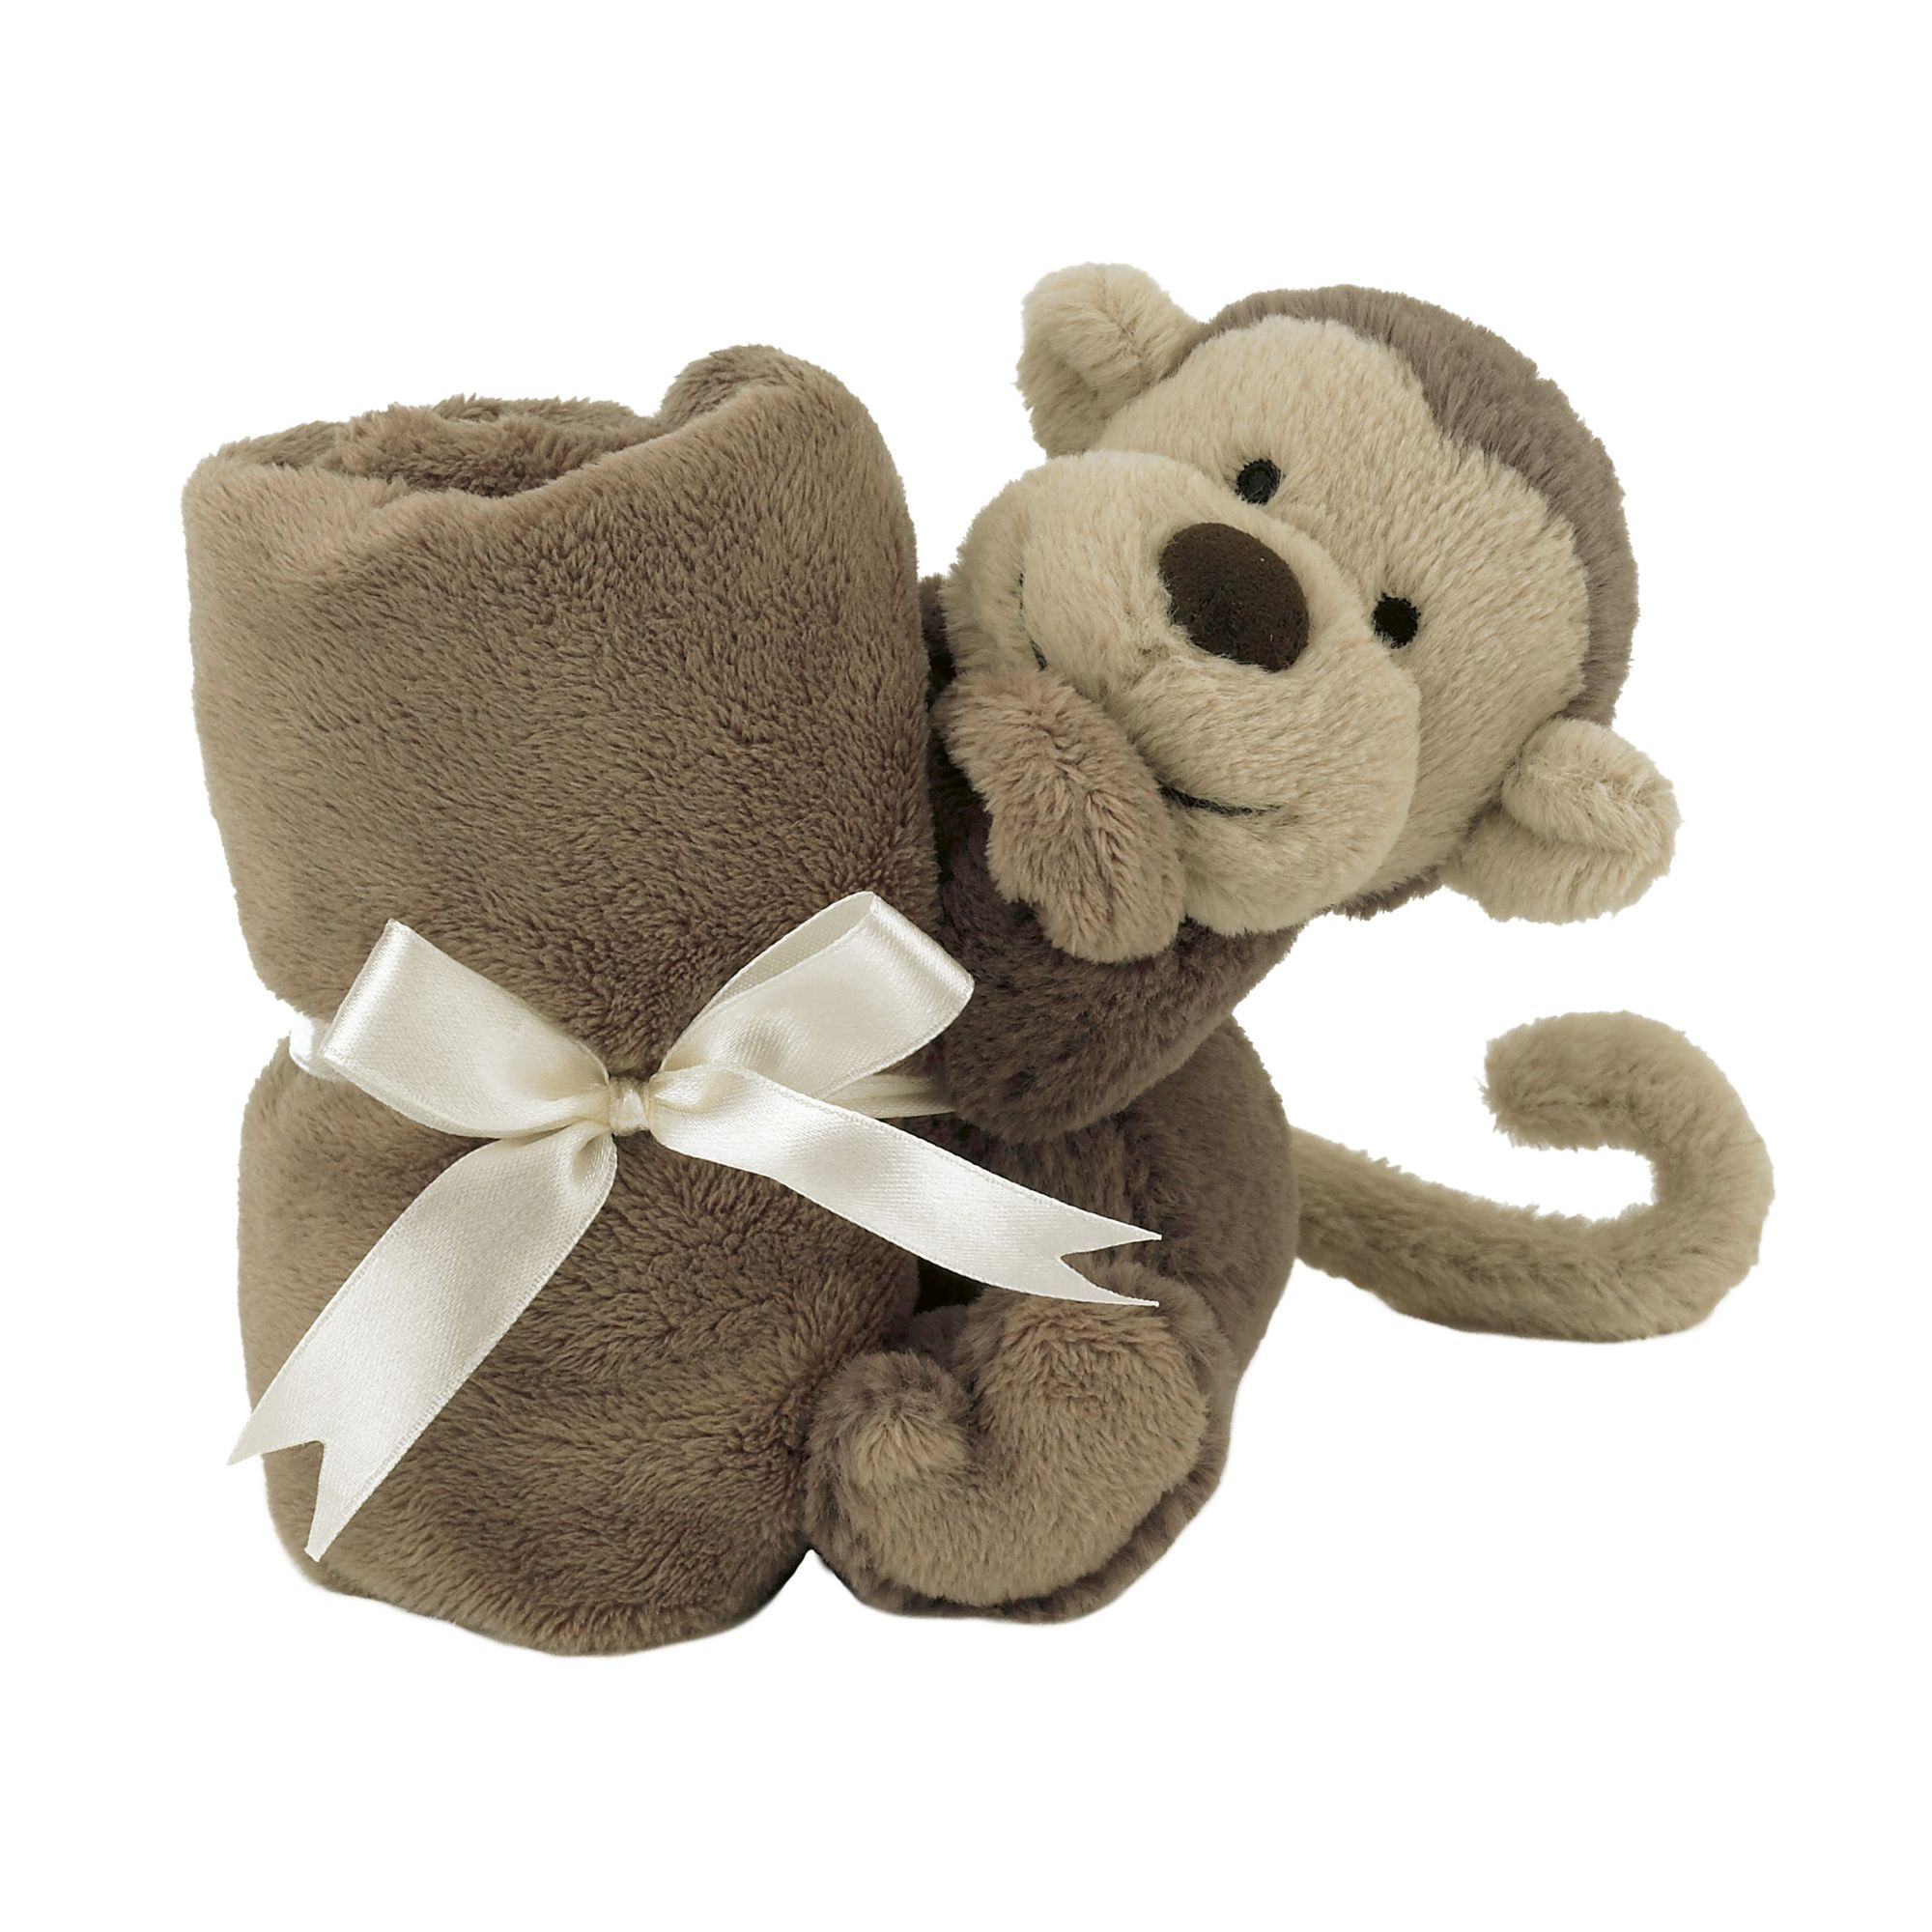 Jellycat Bashful Monkey Baby Soother Soft Toy, One Size, Brown